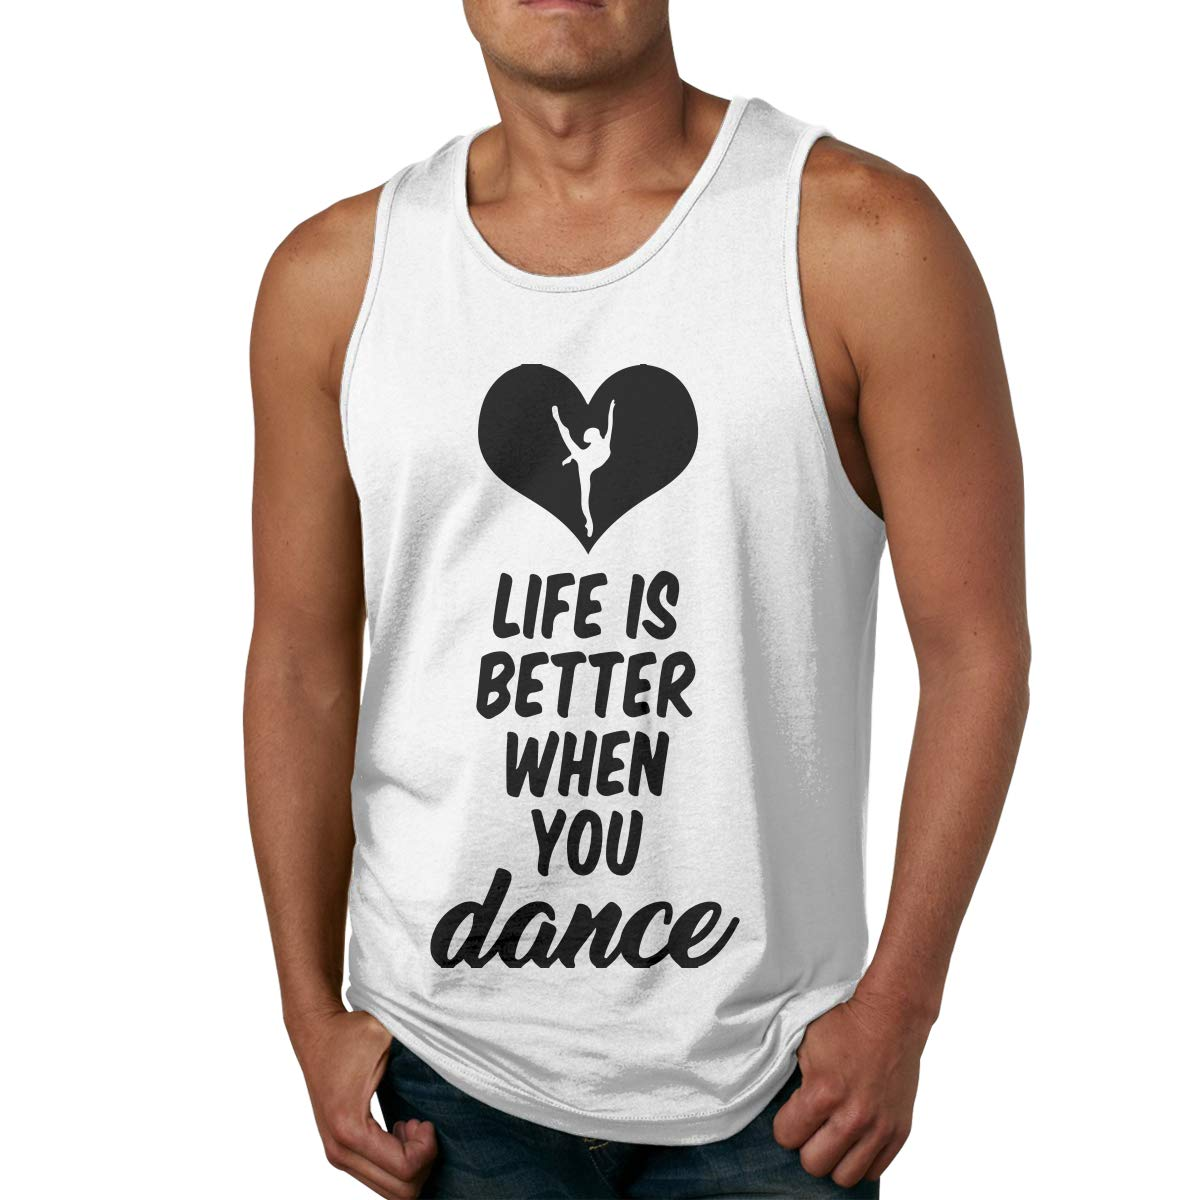 Men Sleeveless T Shirts Loose Life is Better When You Dance 100/% Cotton Blouse